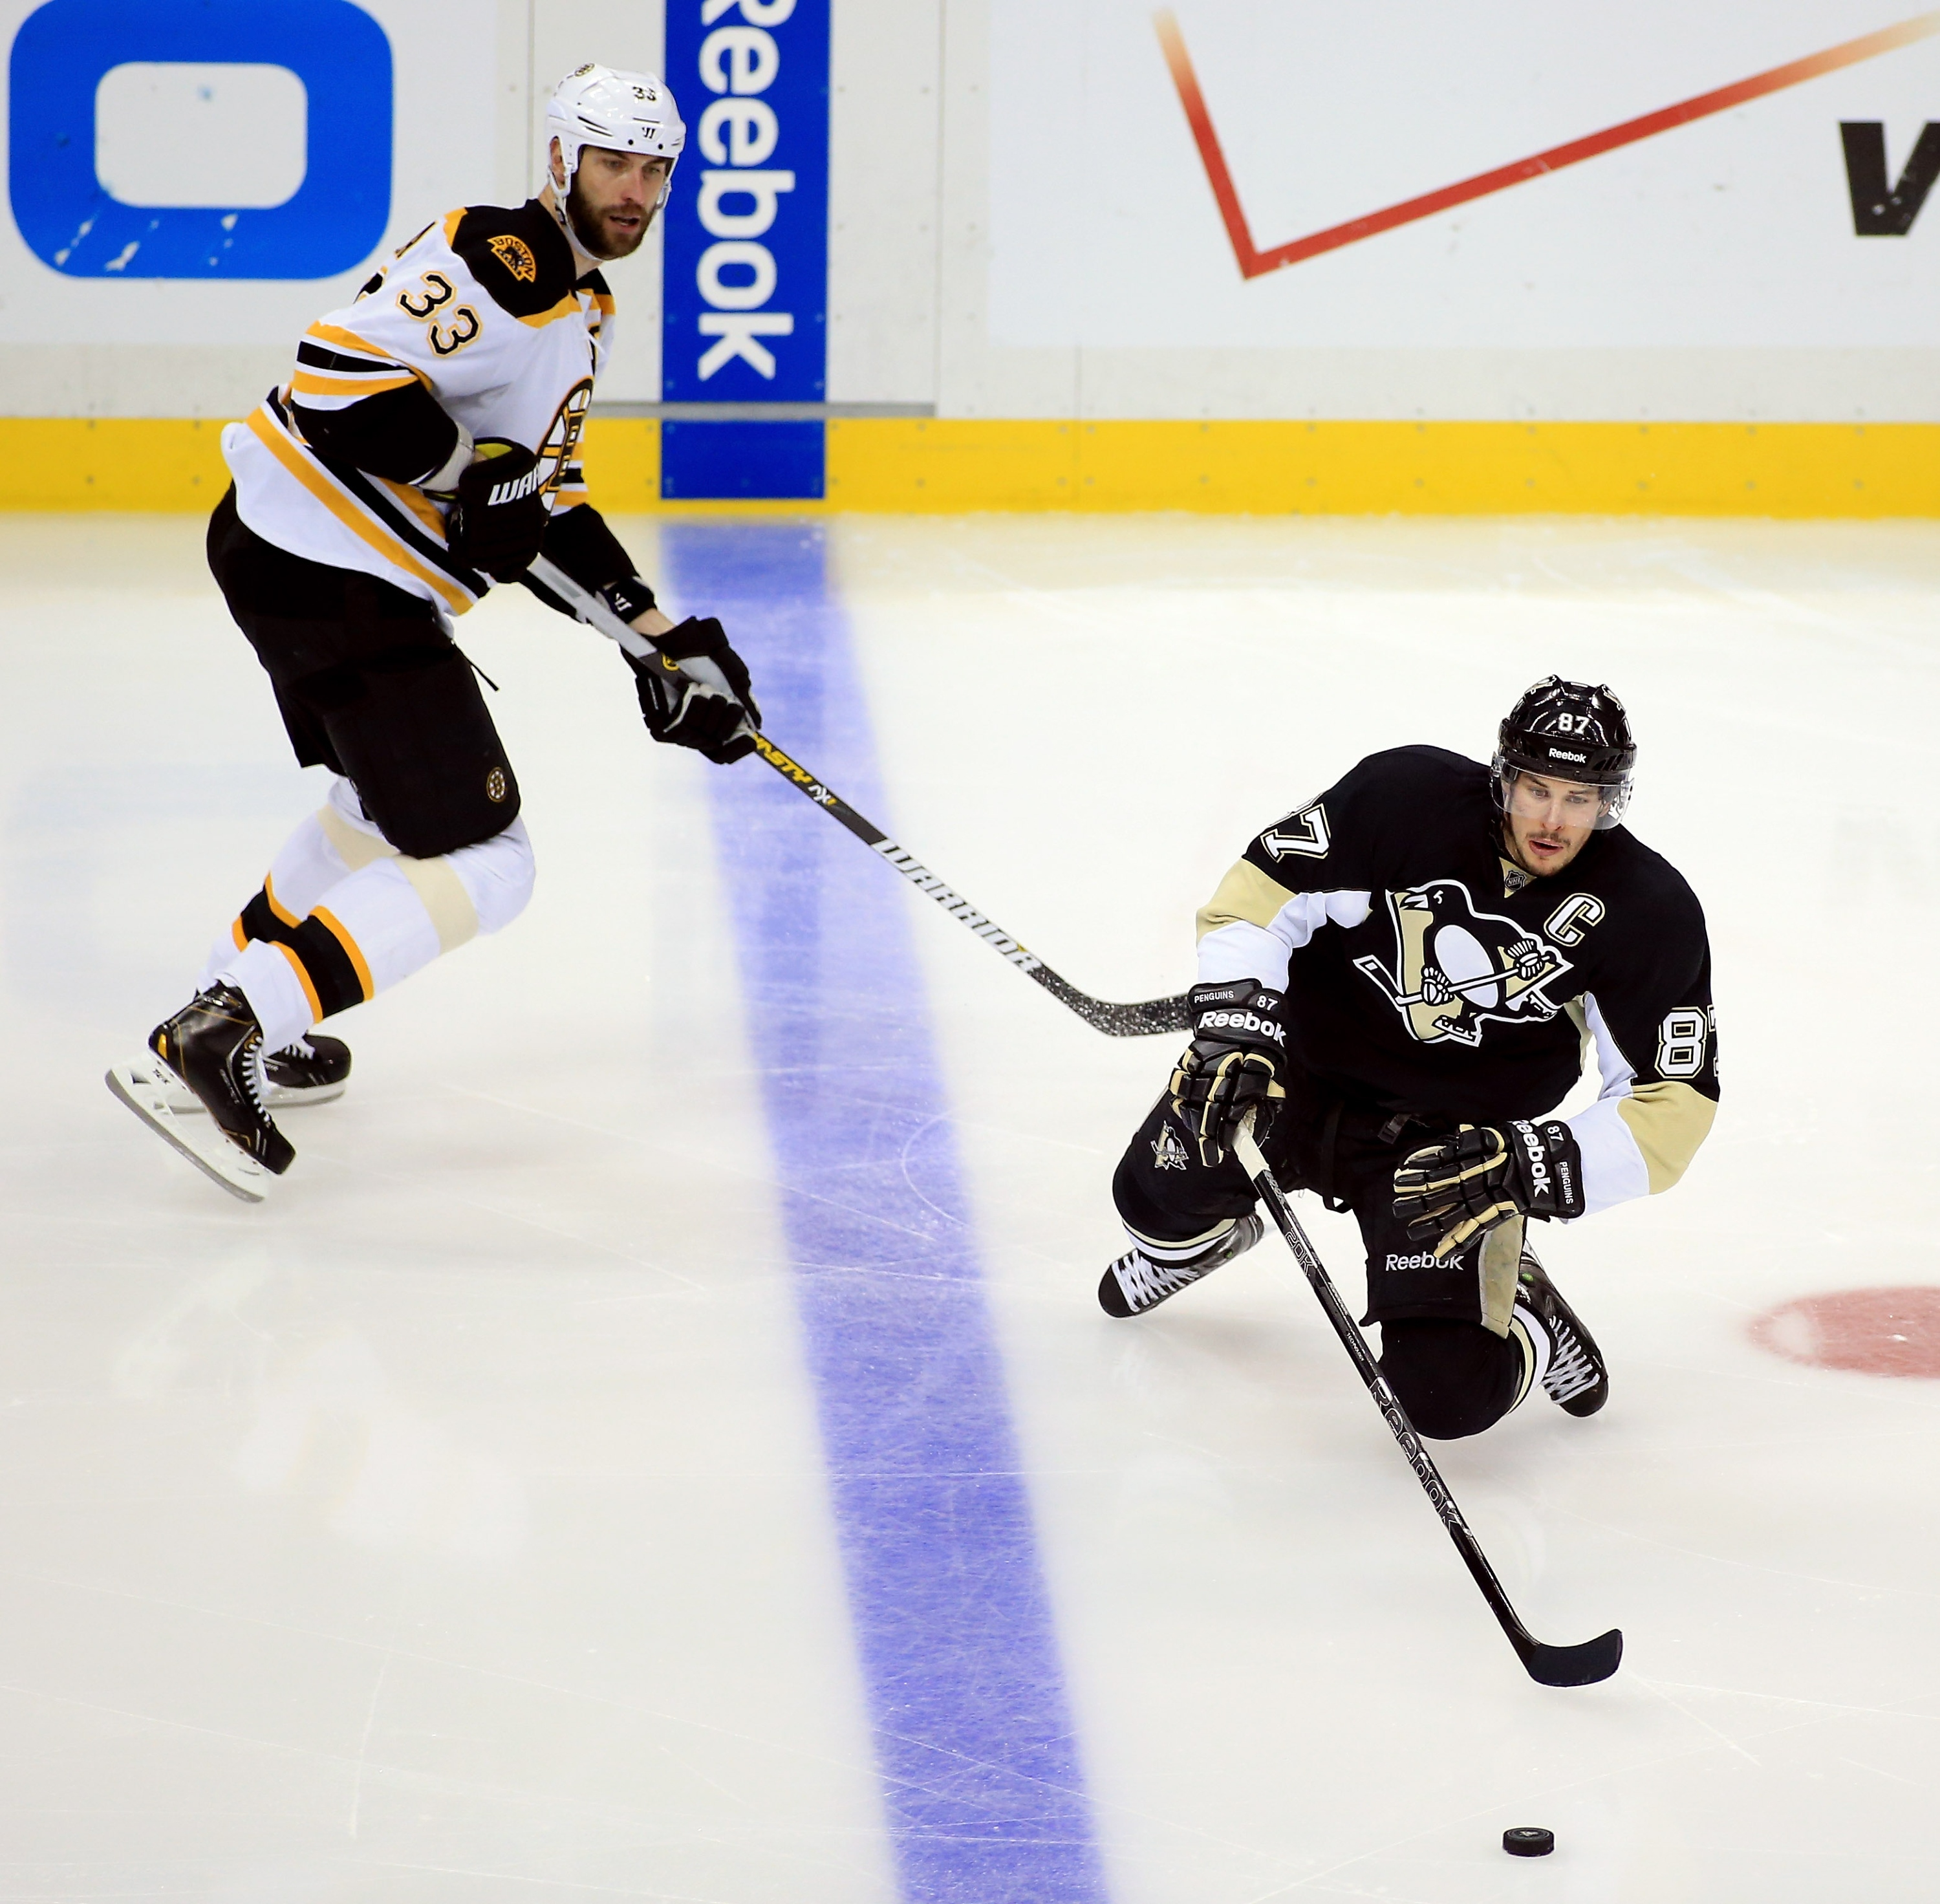 Sidney Crosby and the Penguins got knocked down early and never recovered in Game 2. (Getty)